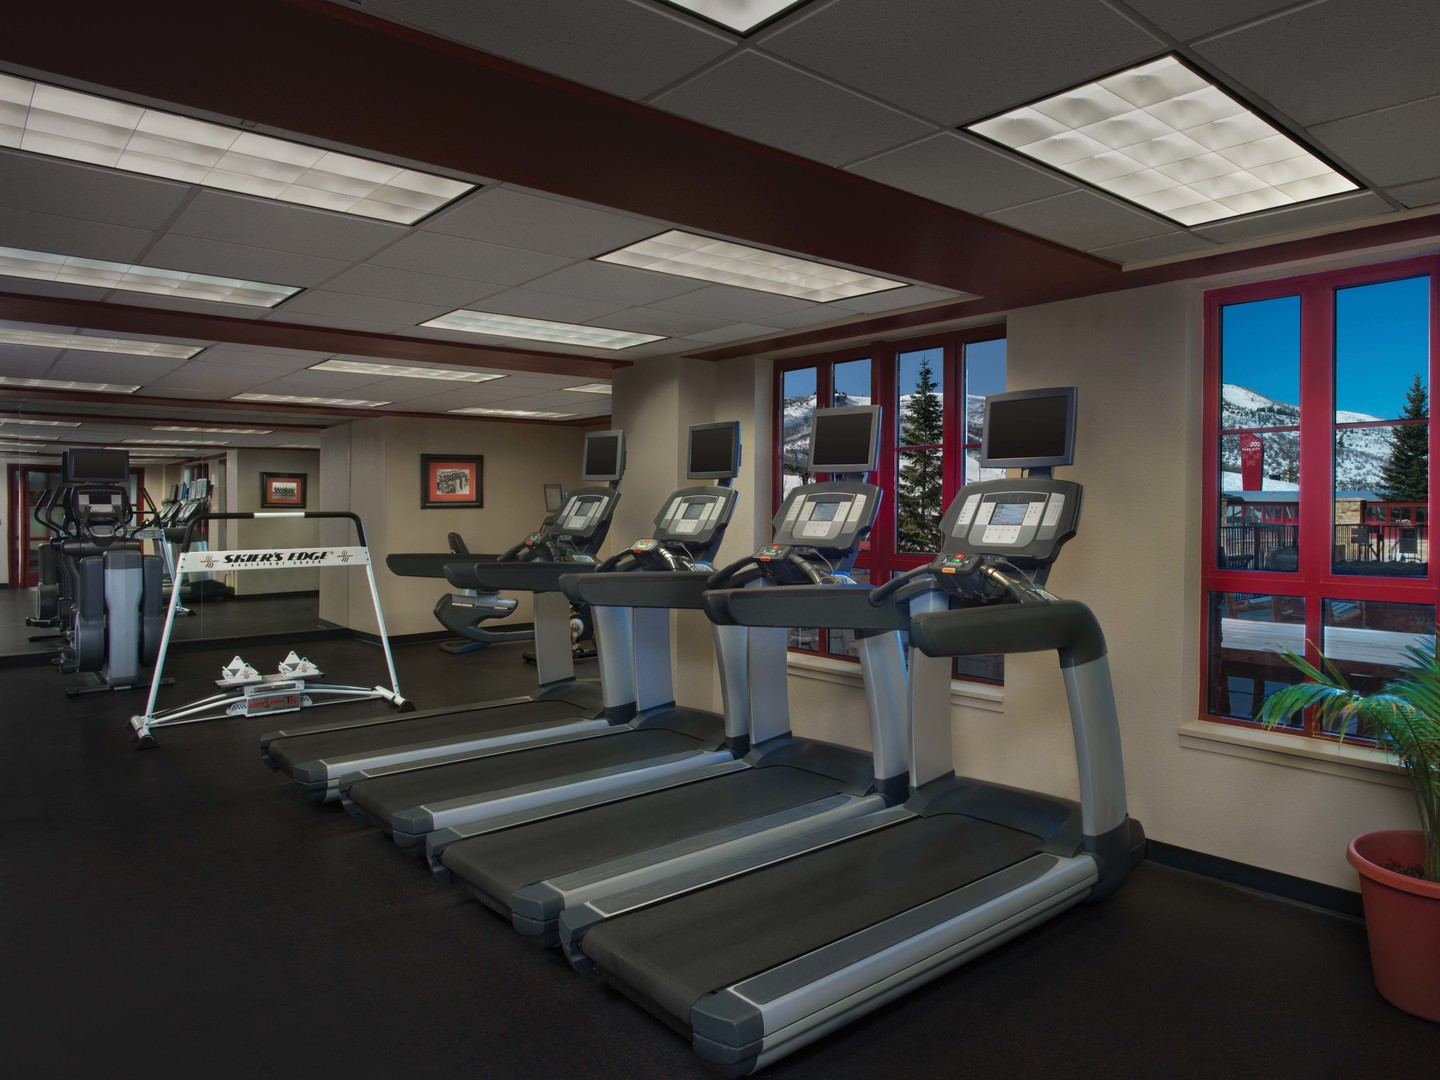 Marriott's MountainSide Fitness Center. Marriott's MountainSide is located in Park City, Utah United States.